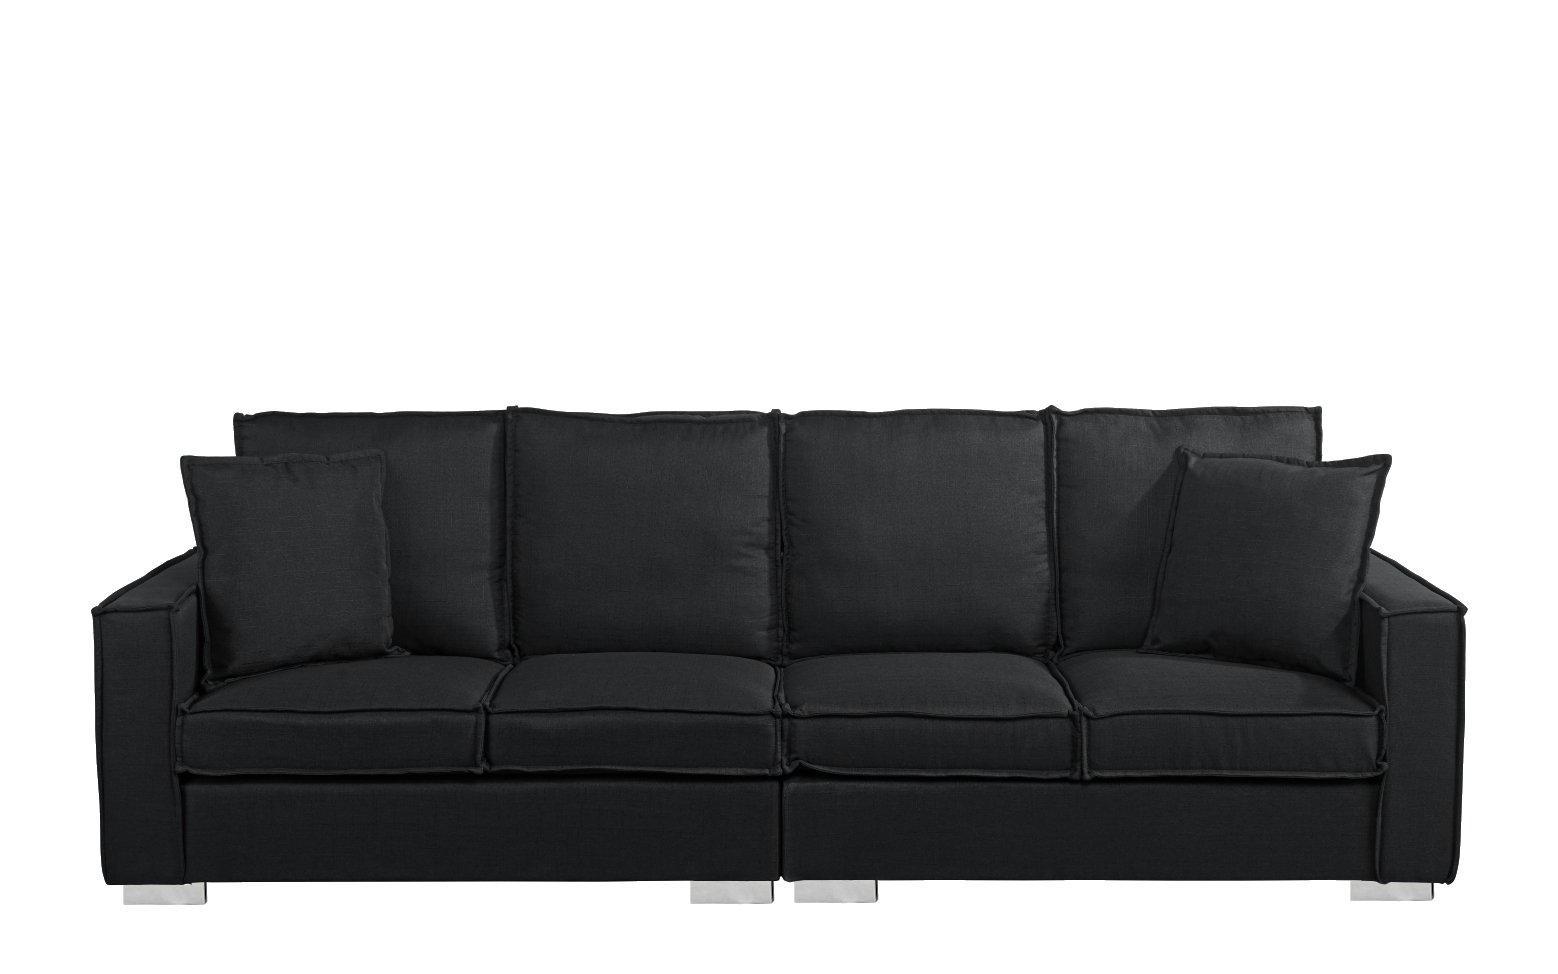 Extra Large Modern Living Room Fabric Sofa 4 Seat Couch